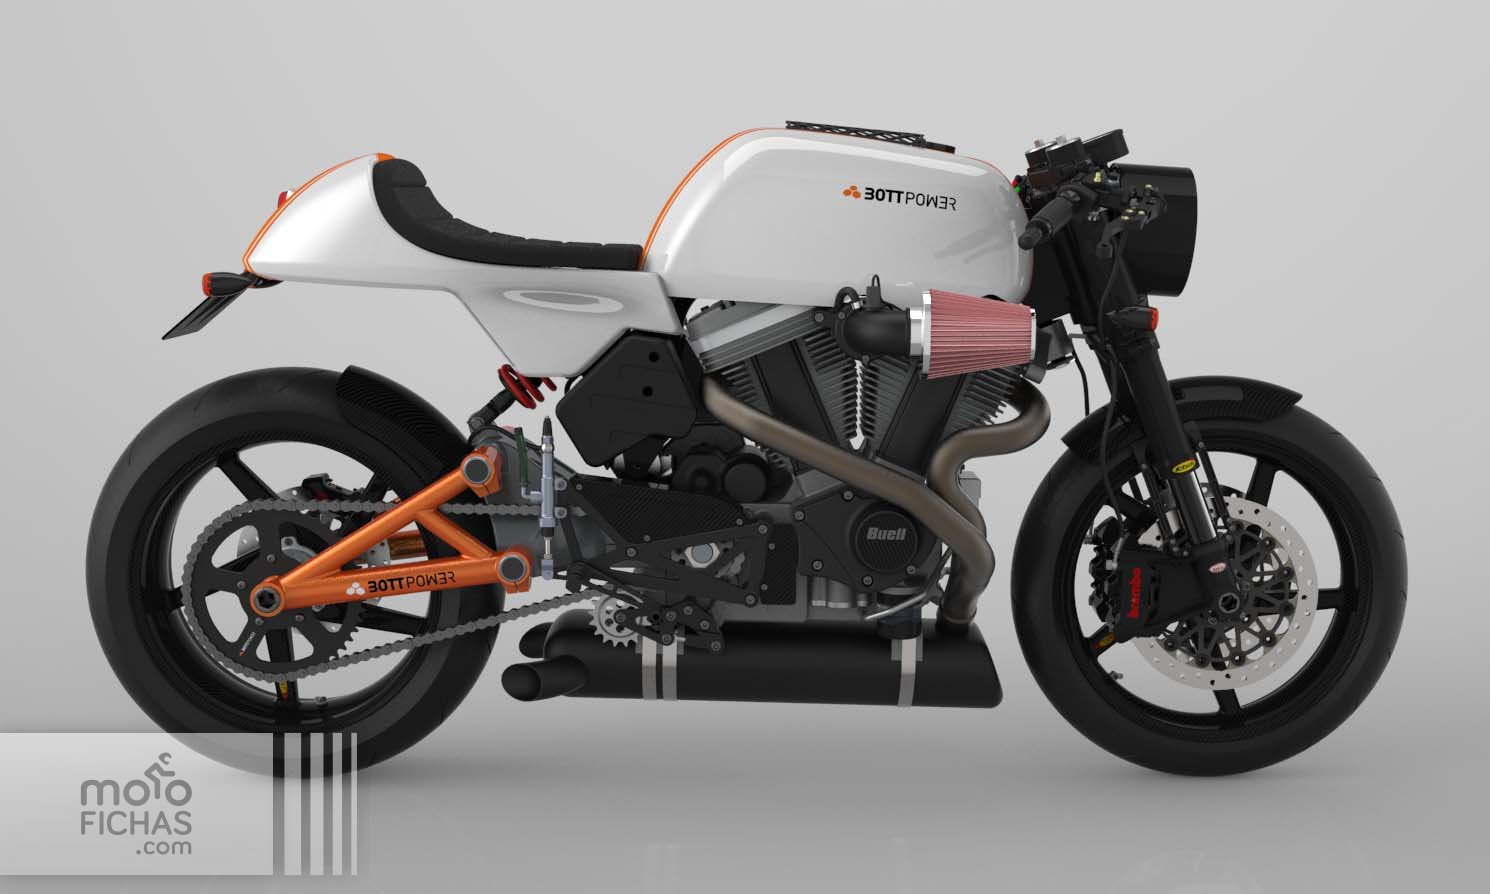 bottpower-xc1-cafe-racer9